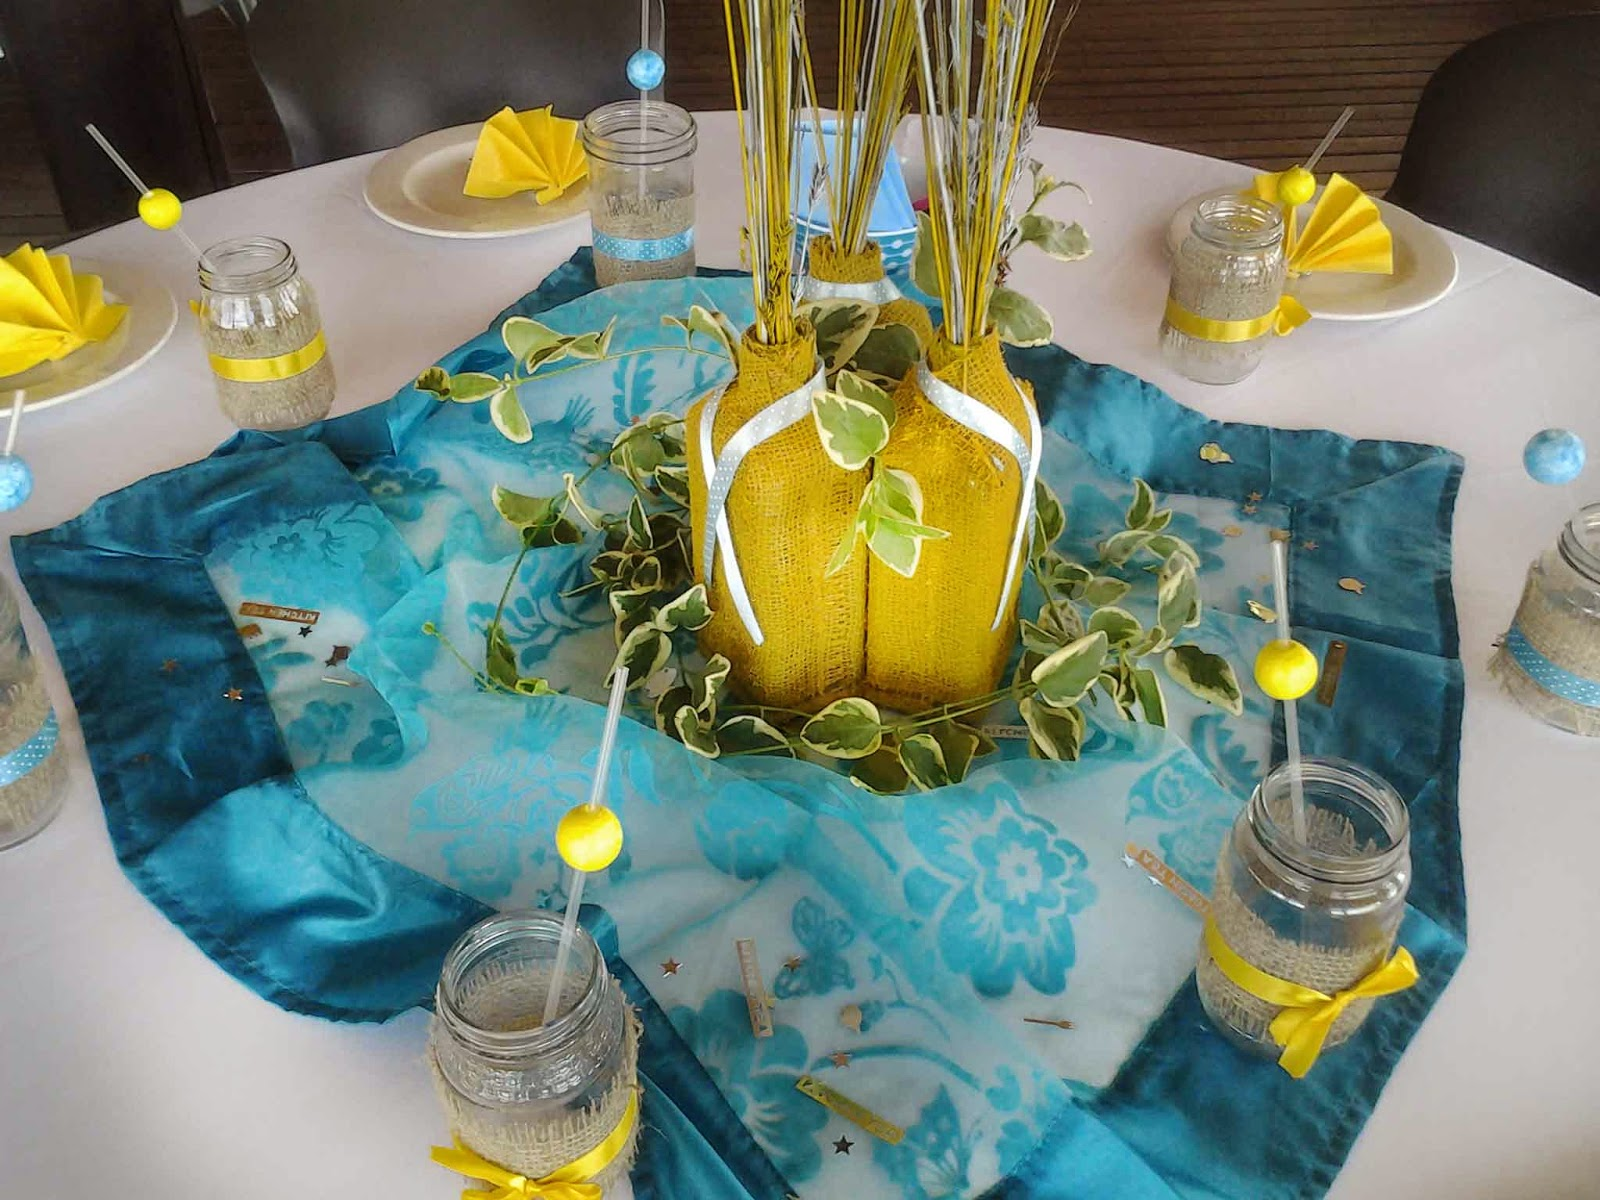 Waterfront Lodge Table decor Lemon